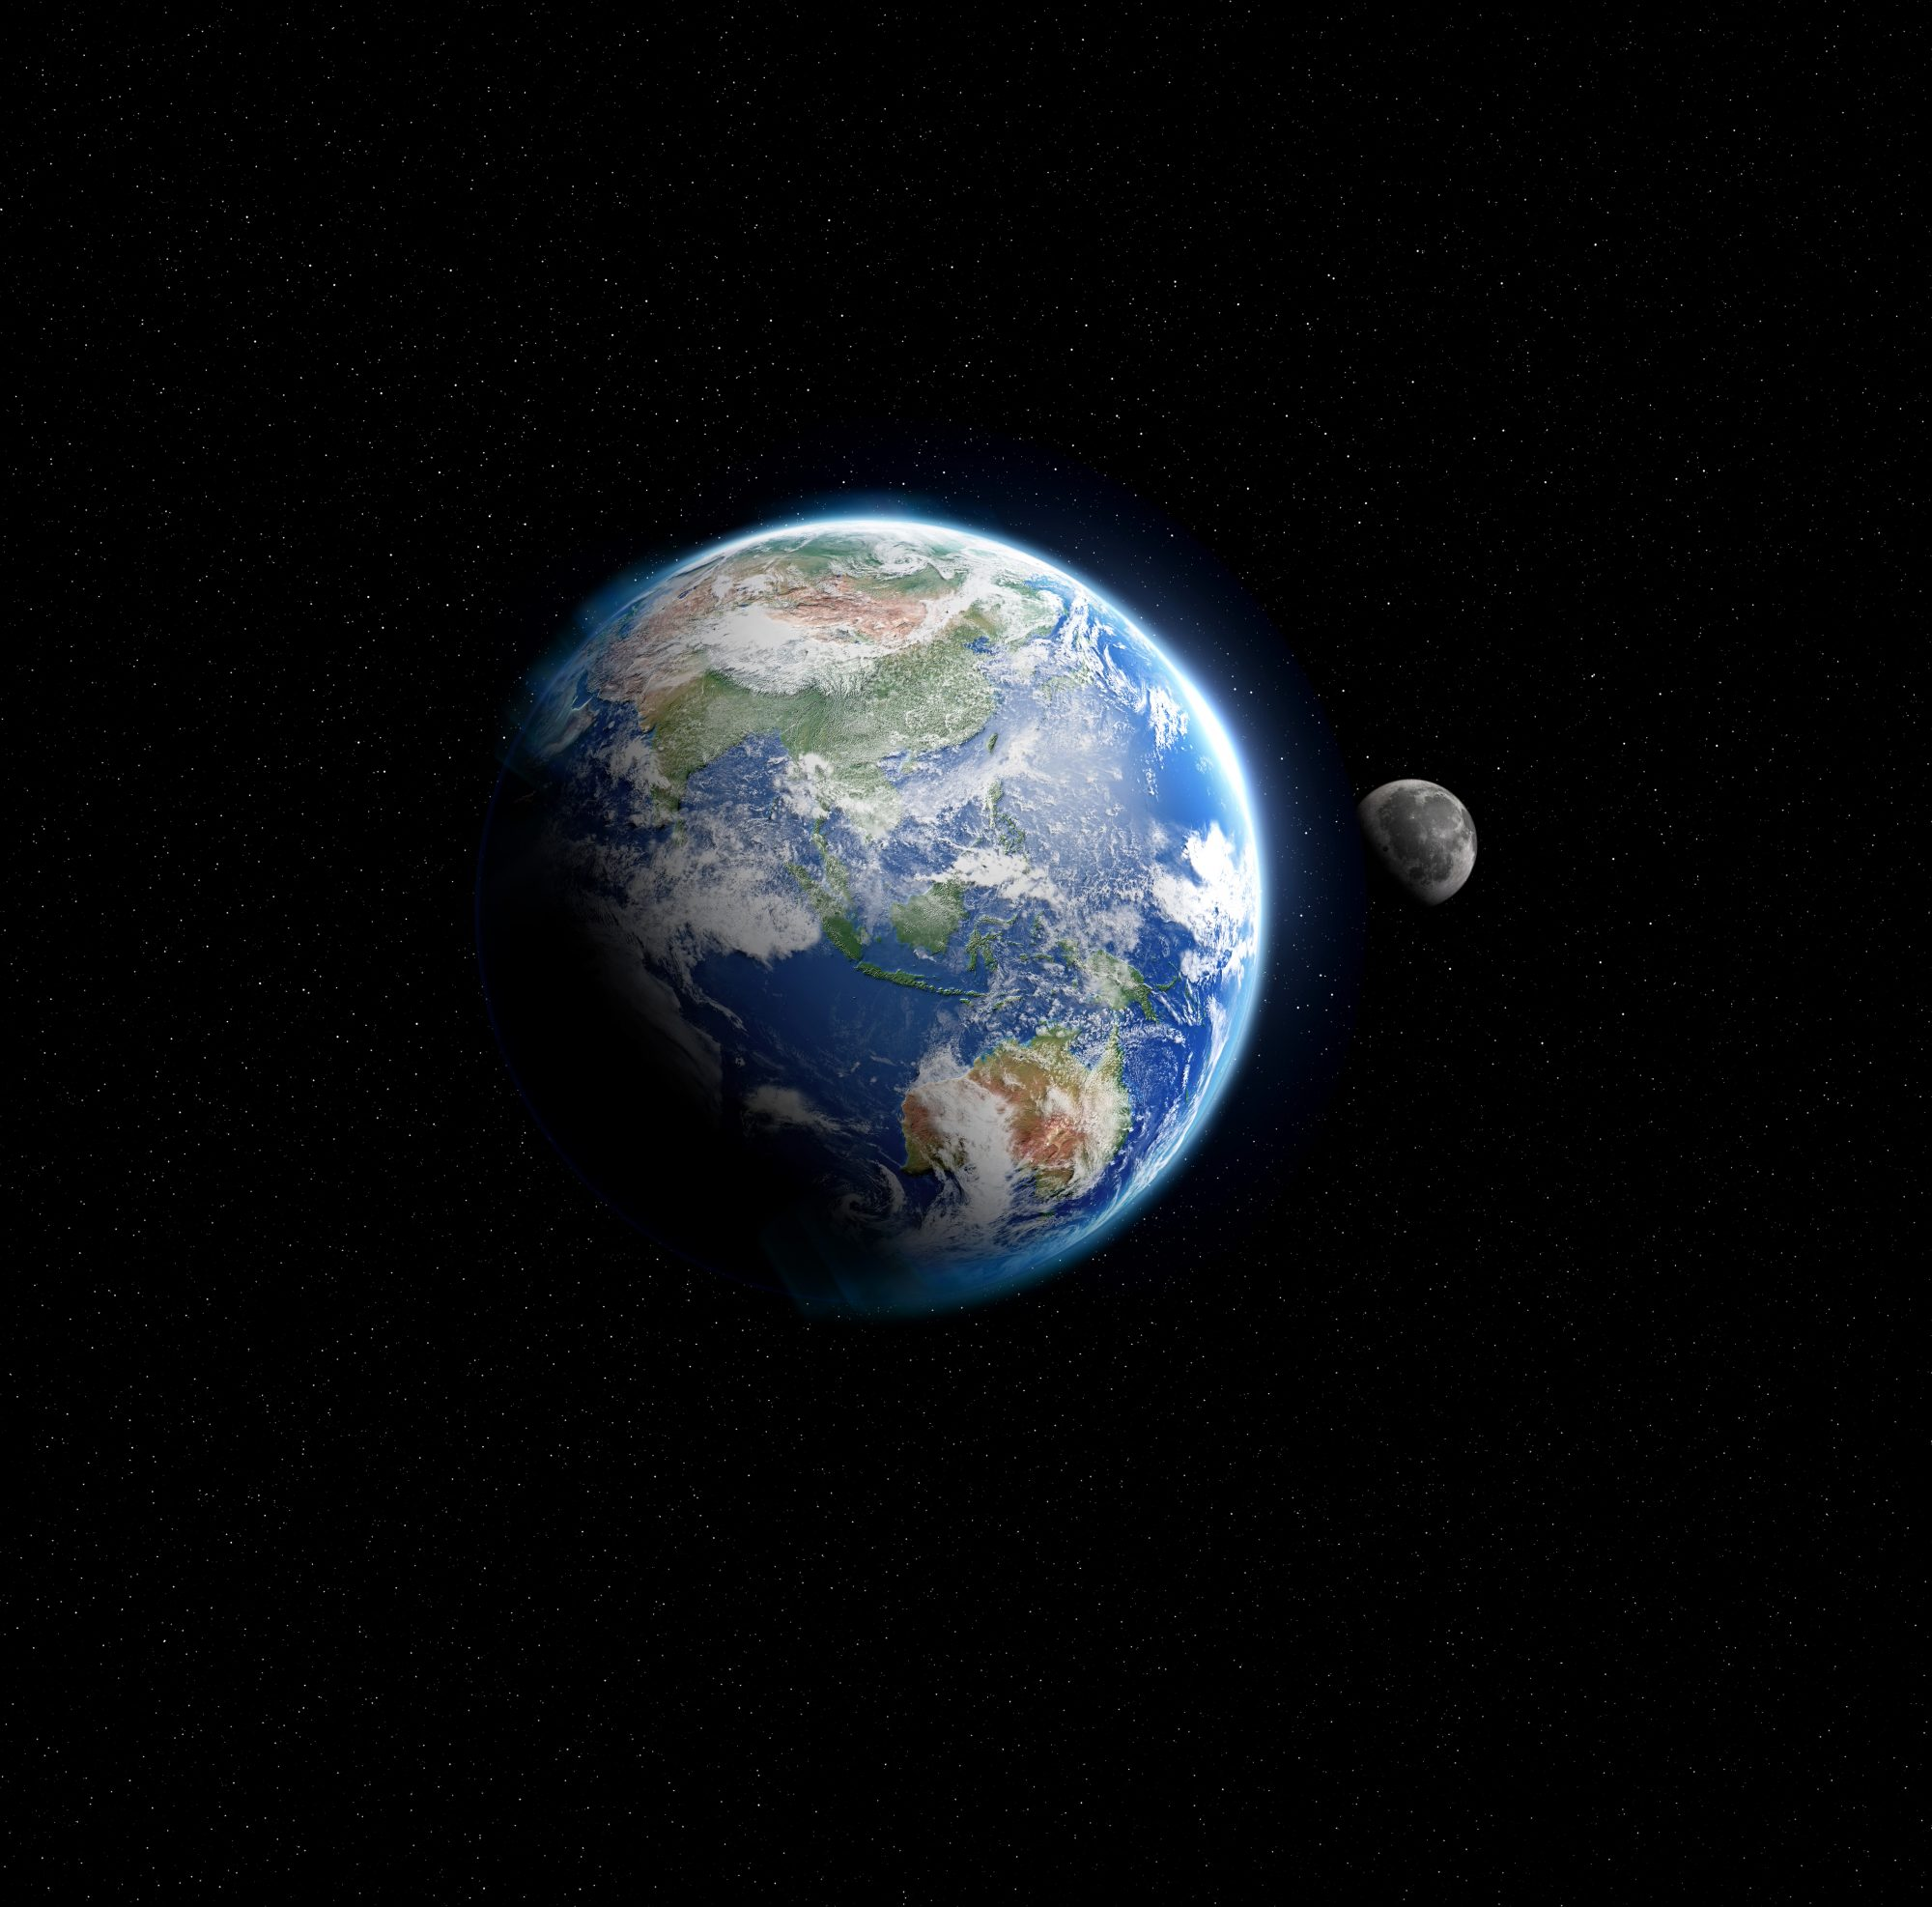 There's a New Mini-Moon Currently Orbiting Earth